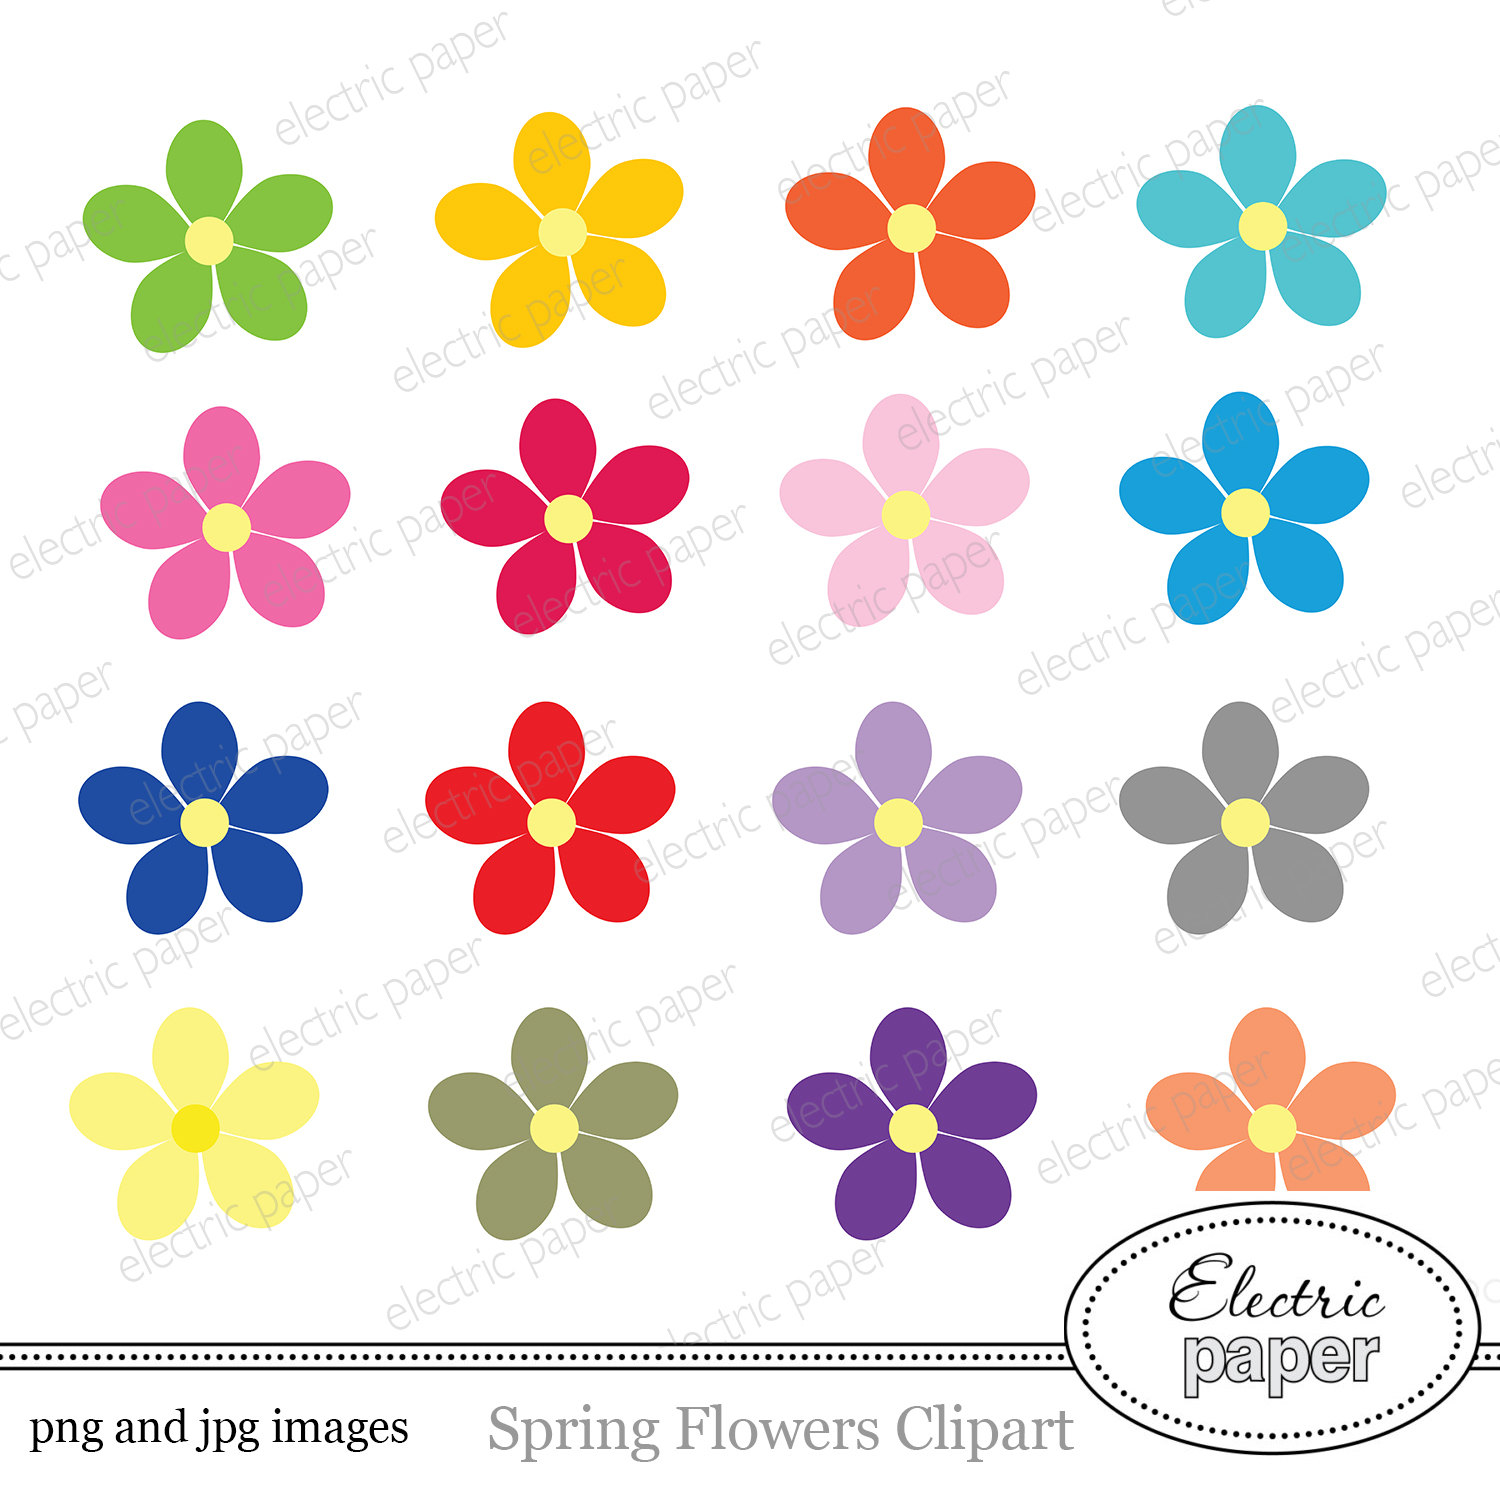 Cute flowers clipart 2 » Clipart Station.